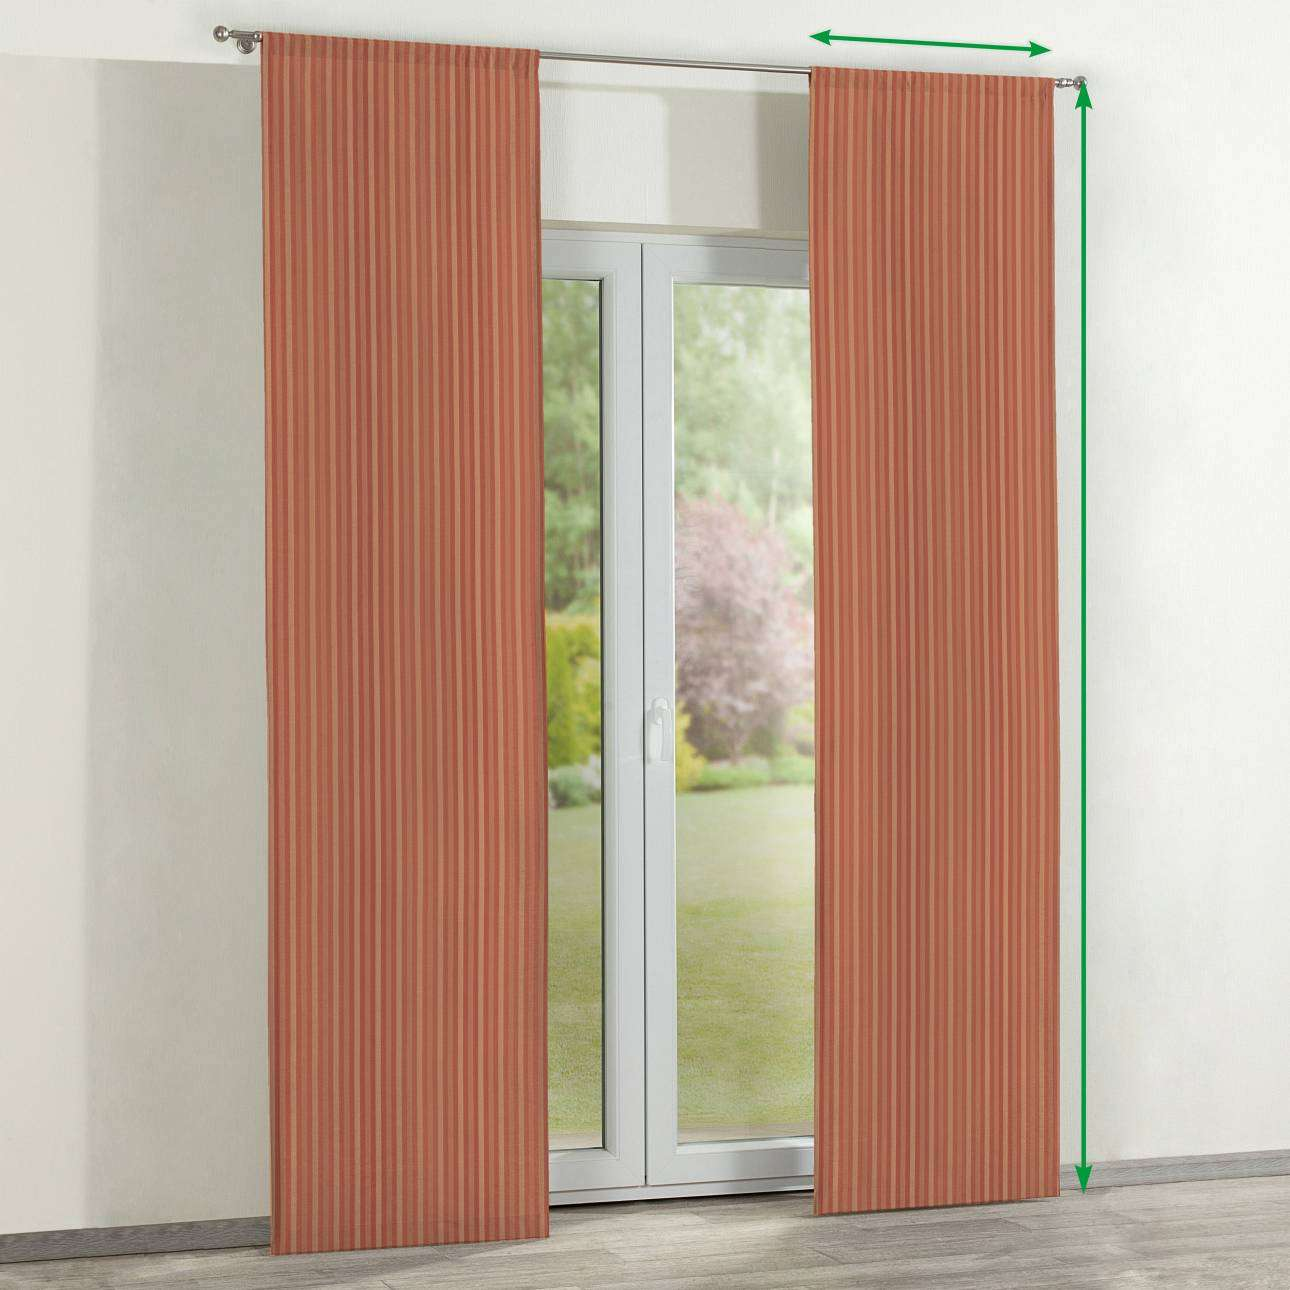 Slot panel curtains – Set of 2 in collection Victoria, fabric: 130-07